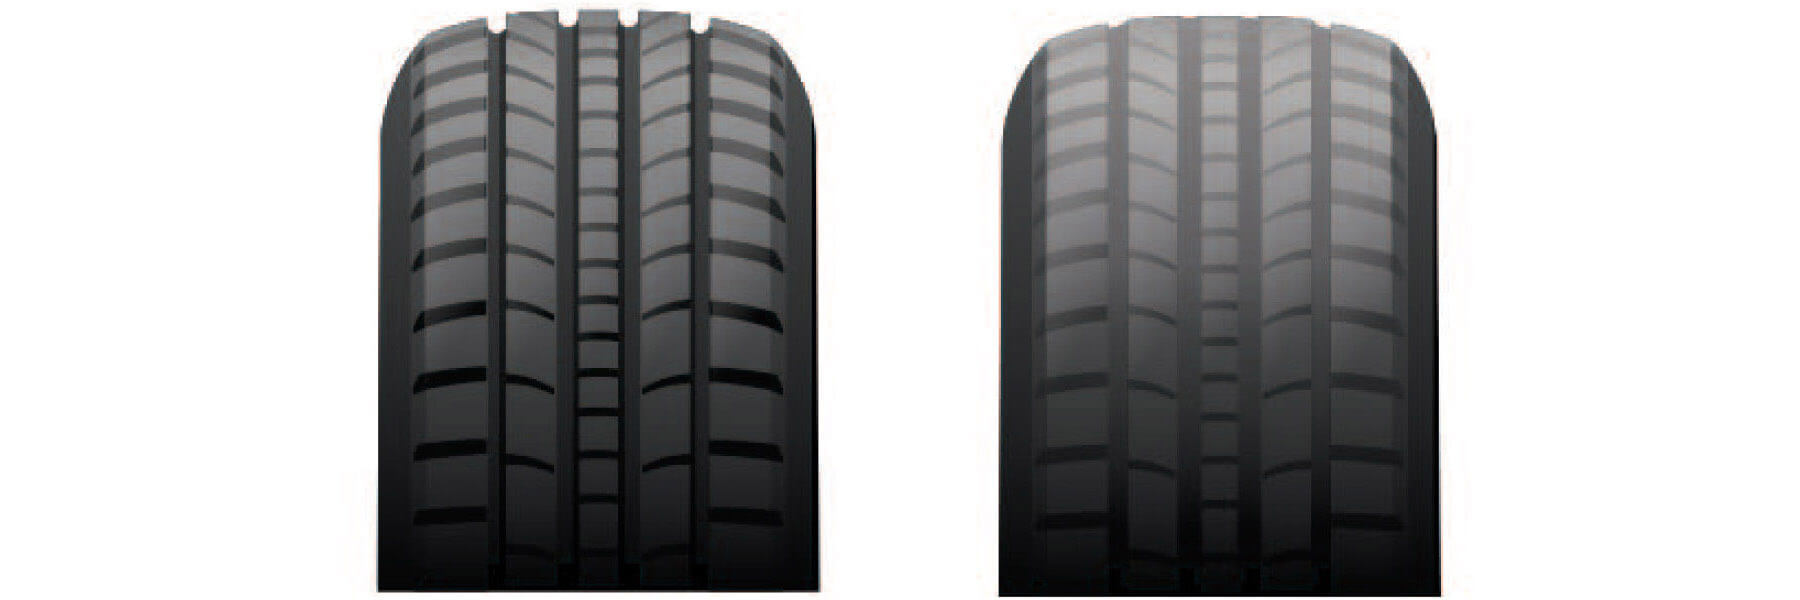 Tire tread depth comparison.